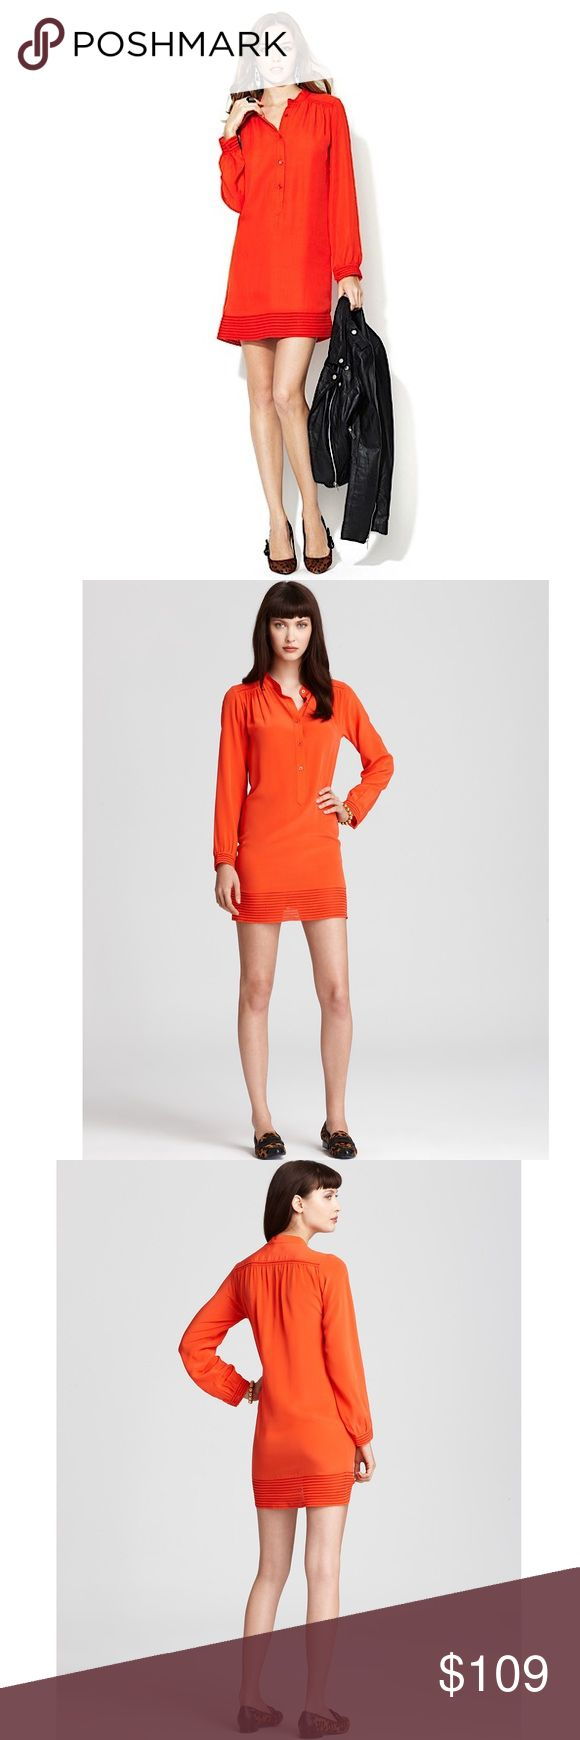 REBECCA MINKOFF NWT long sleeve orange Roxy dress REBECCA MINKOFF NWT long sleeve orange Roxy dress. Light weight, fully lined except for sleeves. Button closure down the chest. Beautiful dress, perfect transitional piece from summer to fall. Brand new with tag, however, there is a small tear near the last button as shown in the last photo (but I think you can sew it together with a sewing machine) Rebecca Minkoff Dresses Long Sleeve